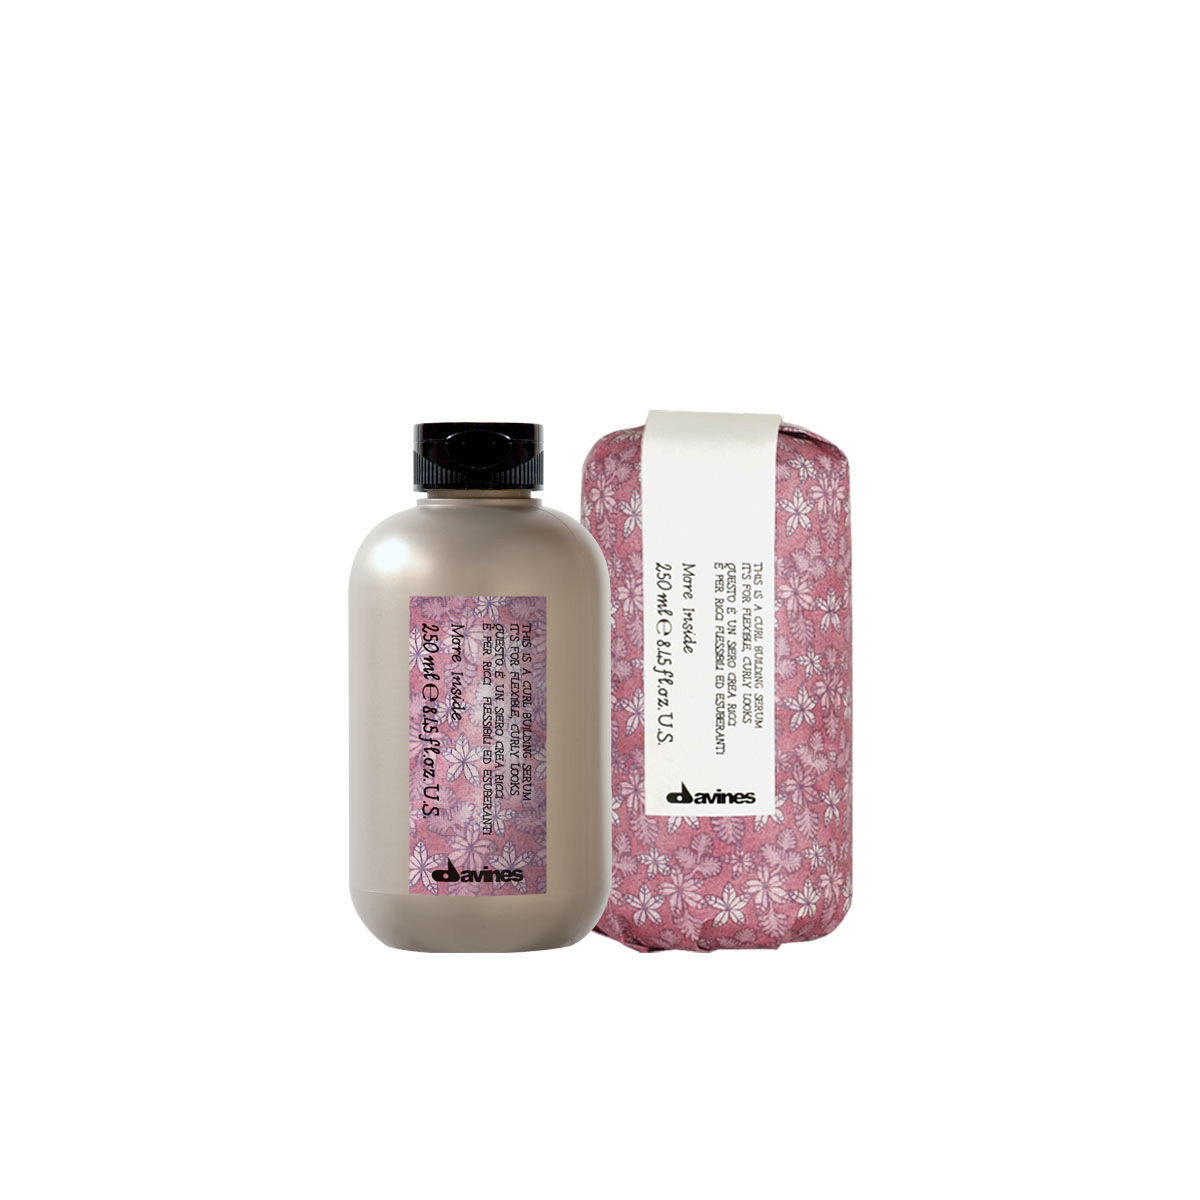 Davines This is a Curl Building Serum 250 ml | Rizos